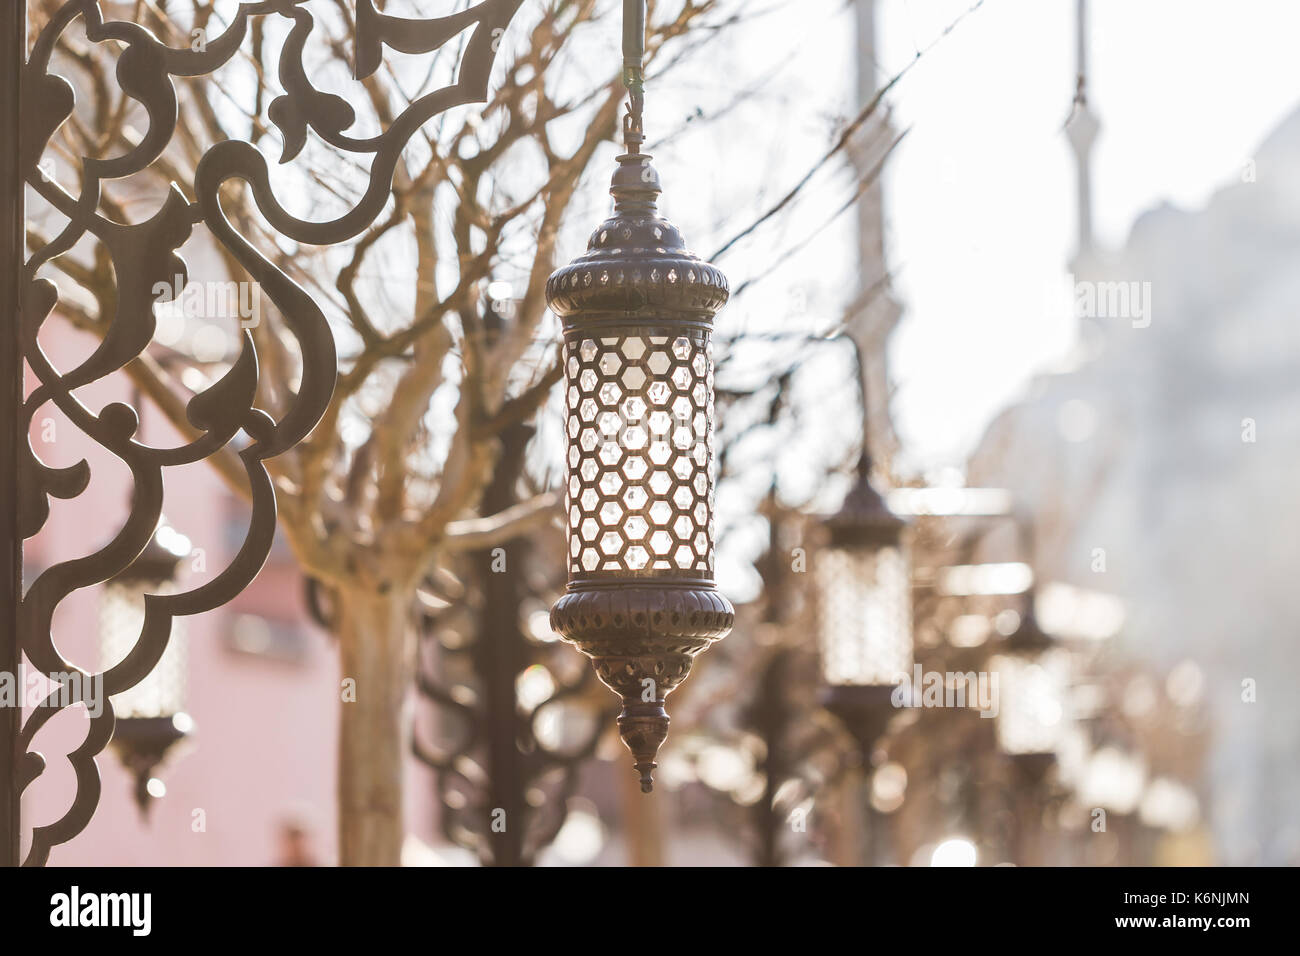 Many beautiful old vintage metal lantern on a square near the Blue Mosque in Istanbul. Forging metal poles. - Stock Image